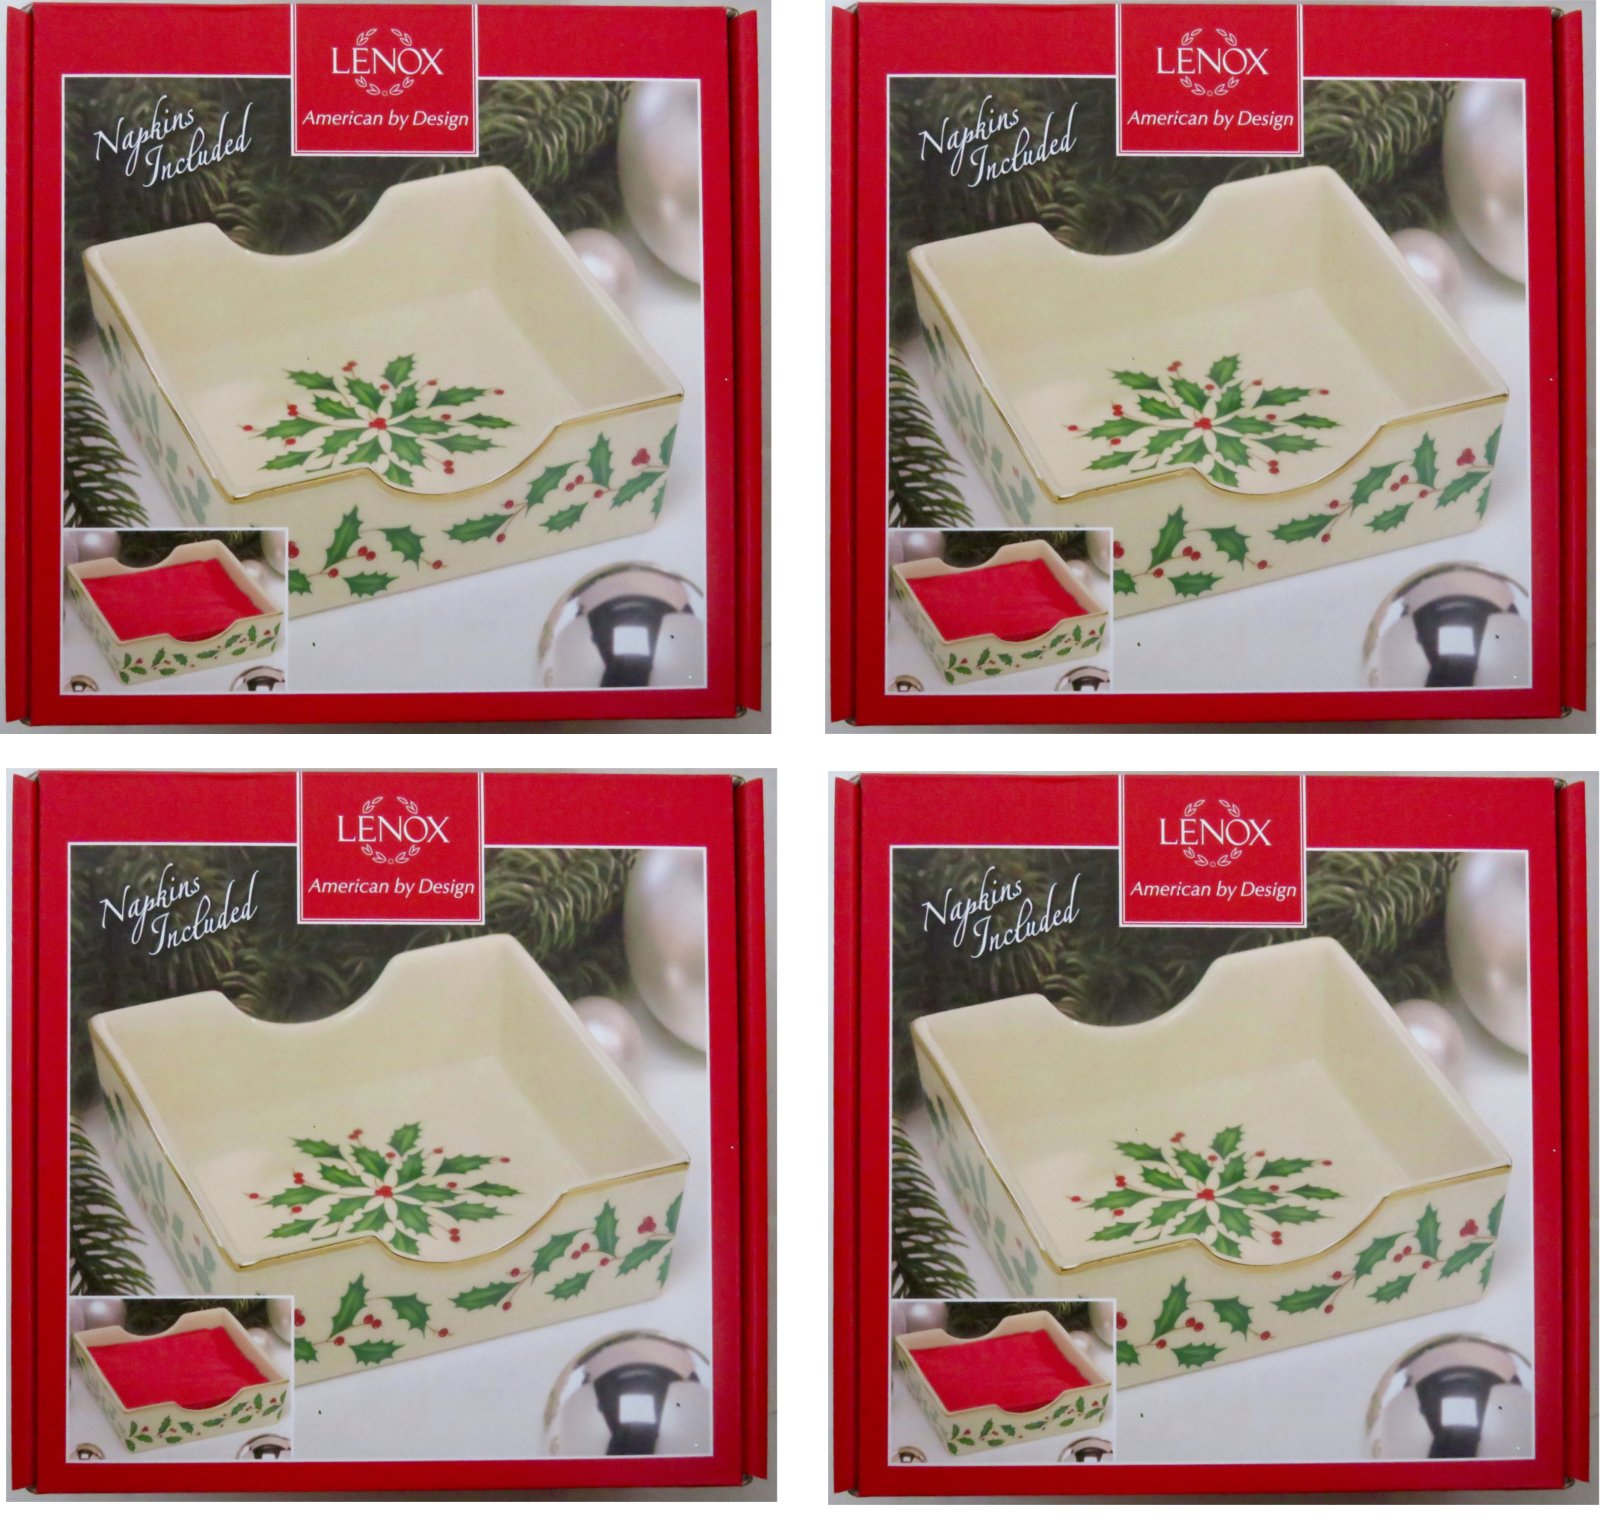 Holiday Napkin Holder with Red Napkins [Set of 4] by Lenox